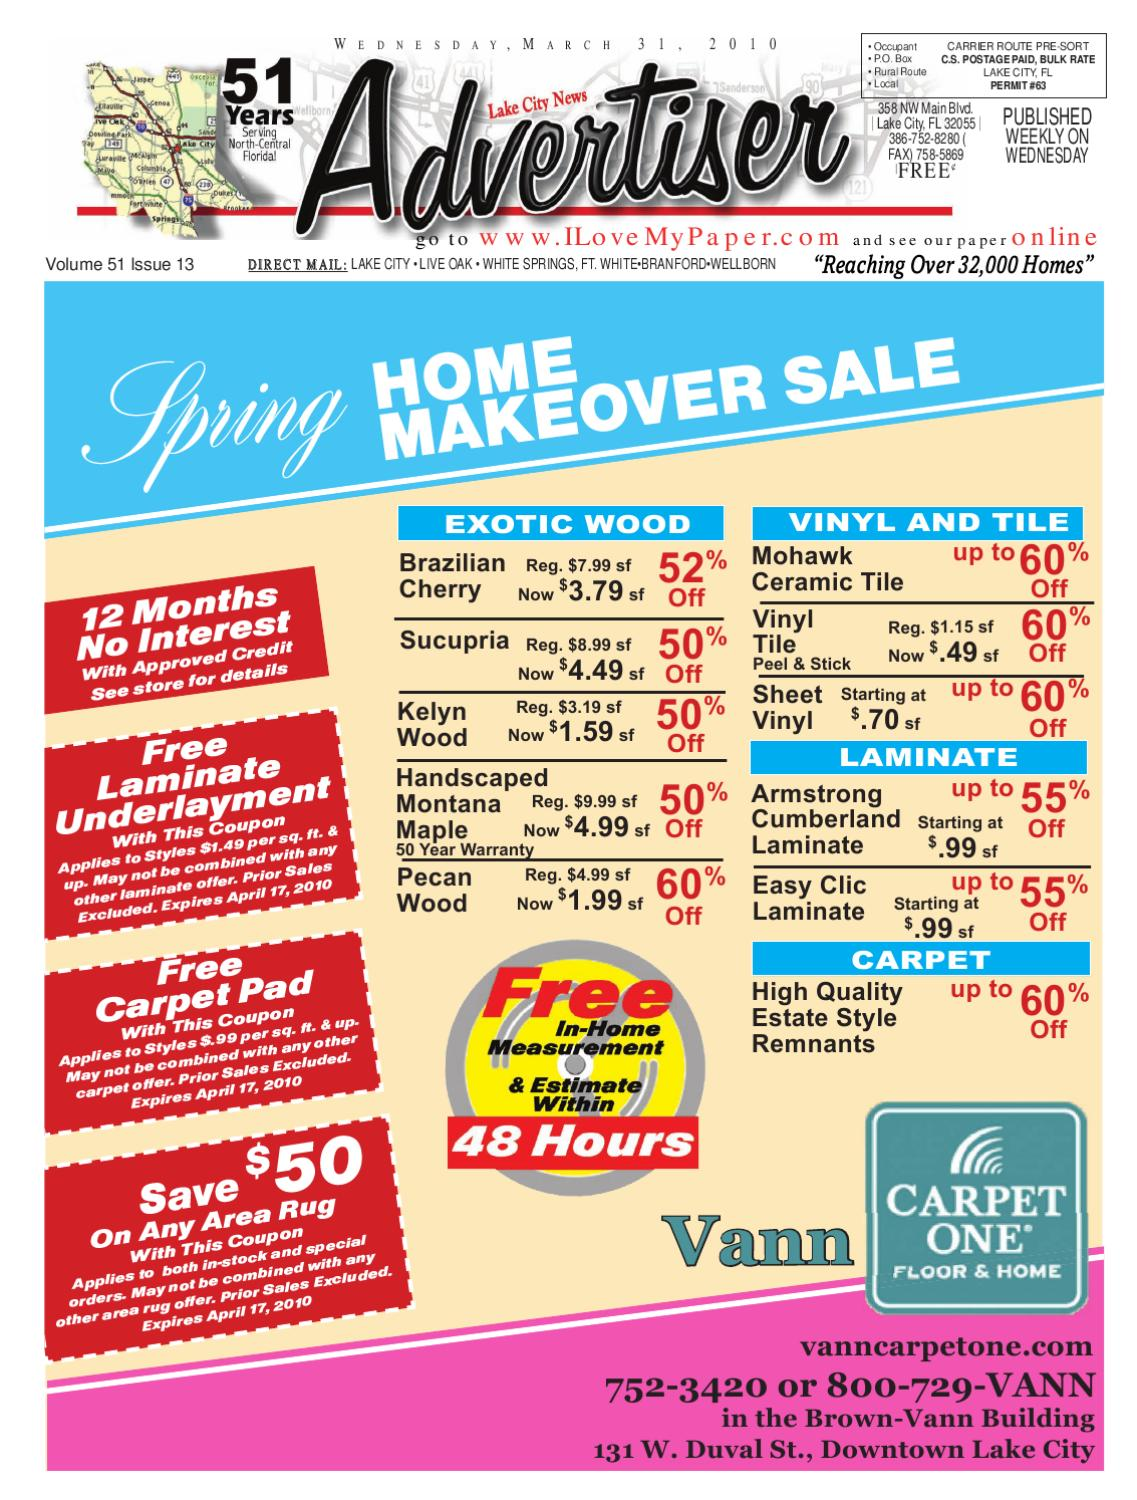 Newspaper Lake City Advertiser Volume 51 Issue 13 by SCBUSA